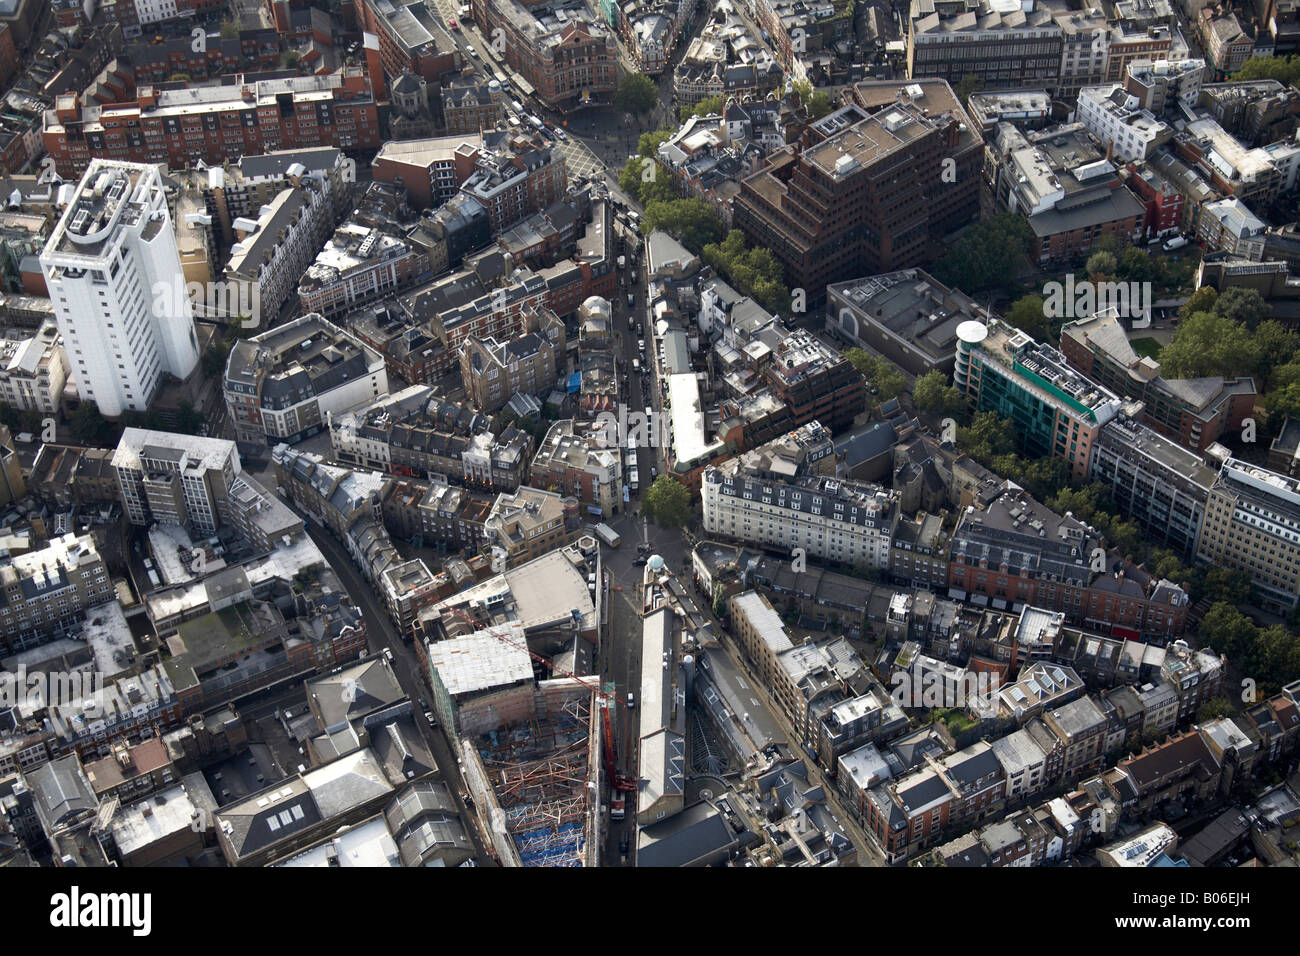 Aerial view south west of Seven Dials Earlham St Shaftesbury Ave Charing Cross Rd Cambridge Circus Covent Garden - Stock Image